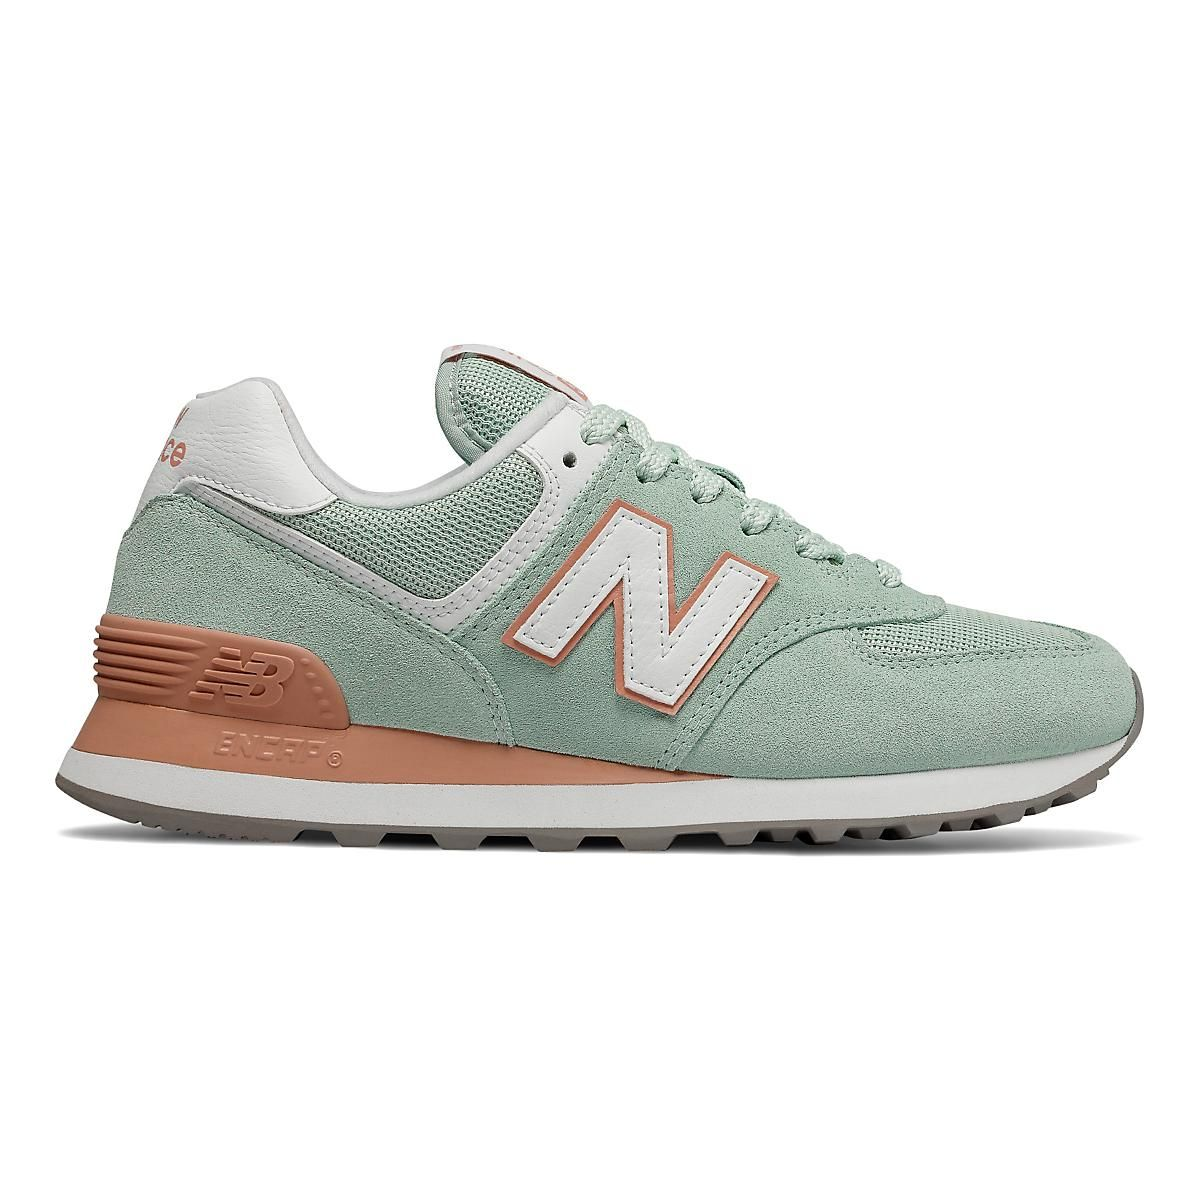 Women's New Balance 574 Essentials 24.7, Casual Shoes in